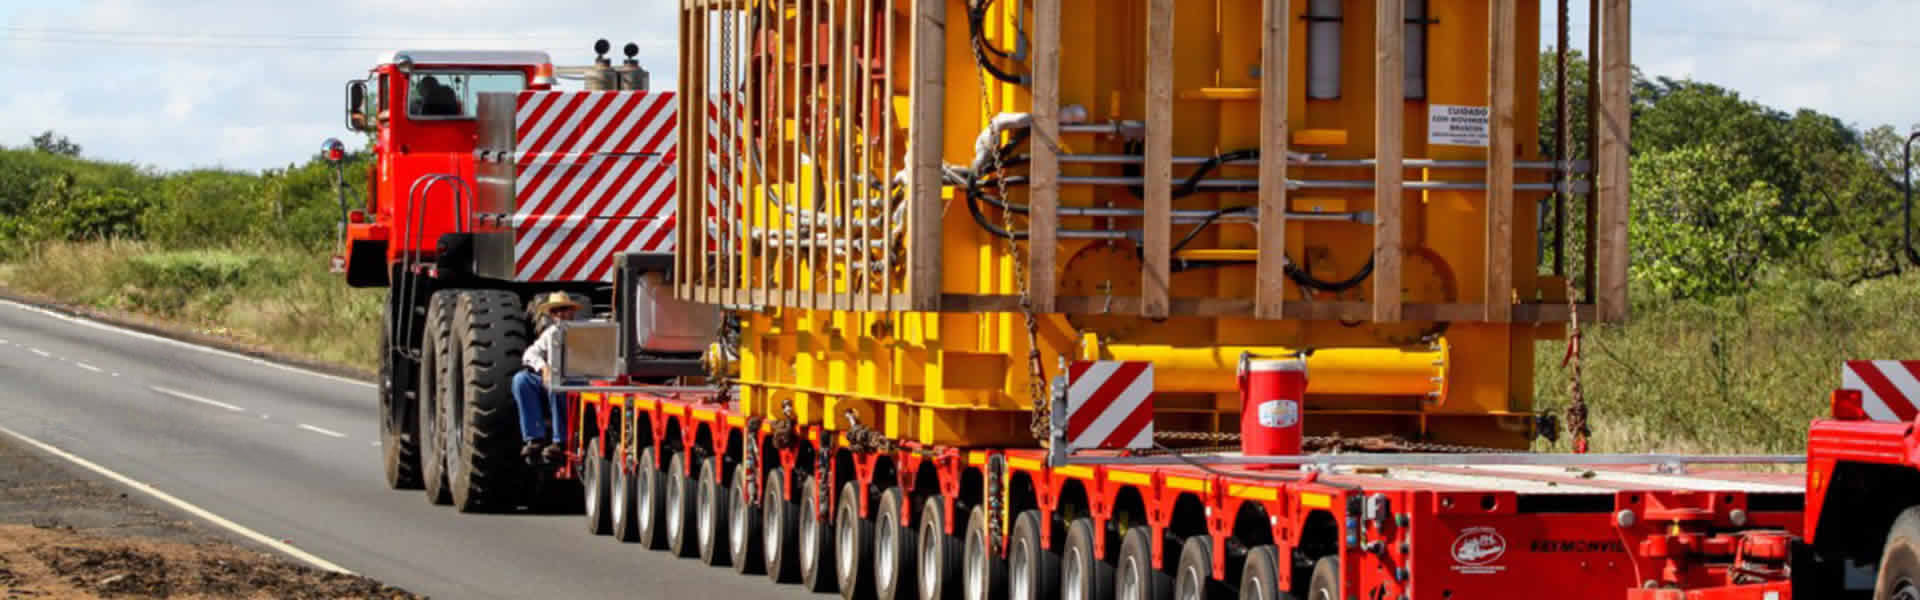 Large equipment transport